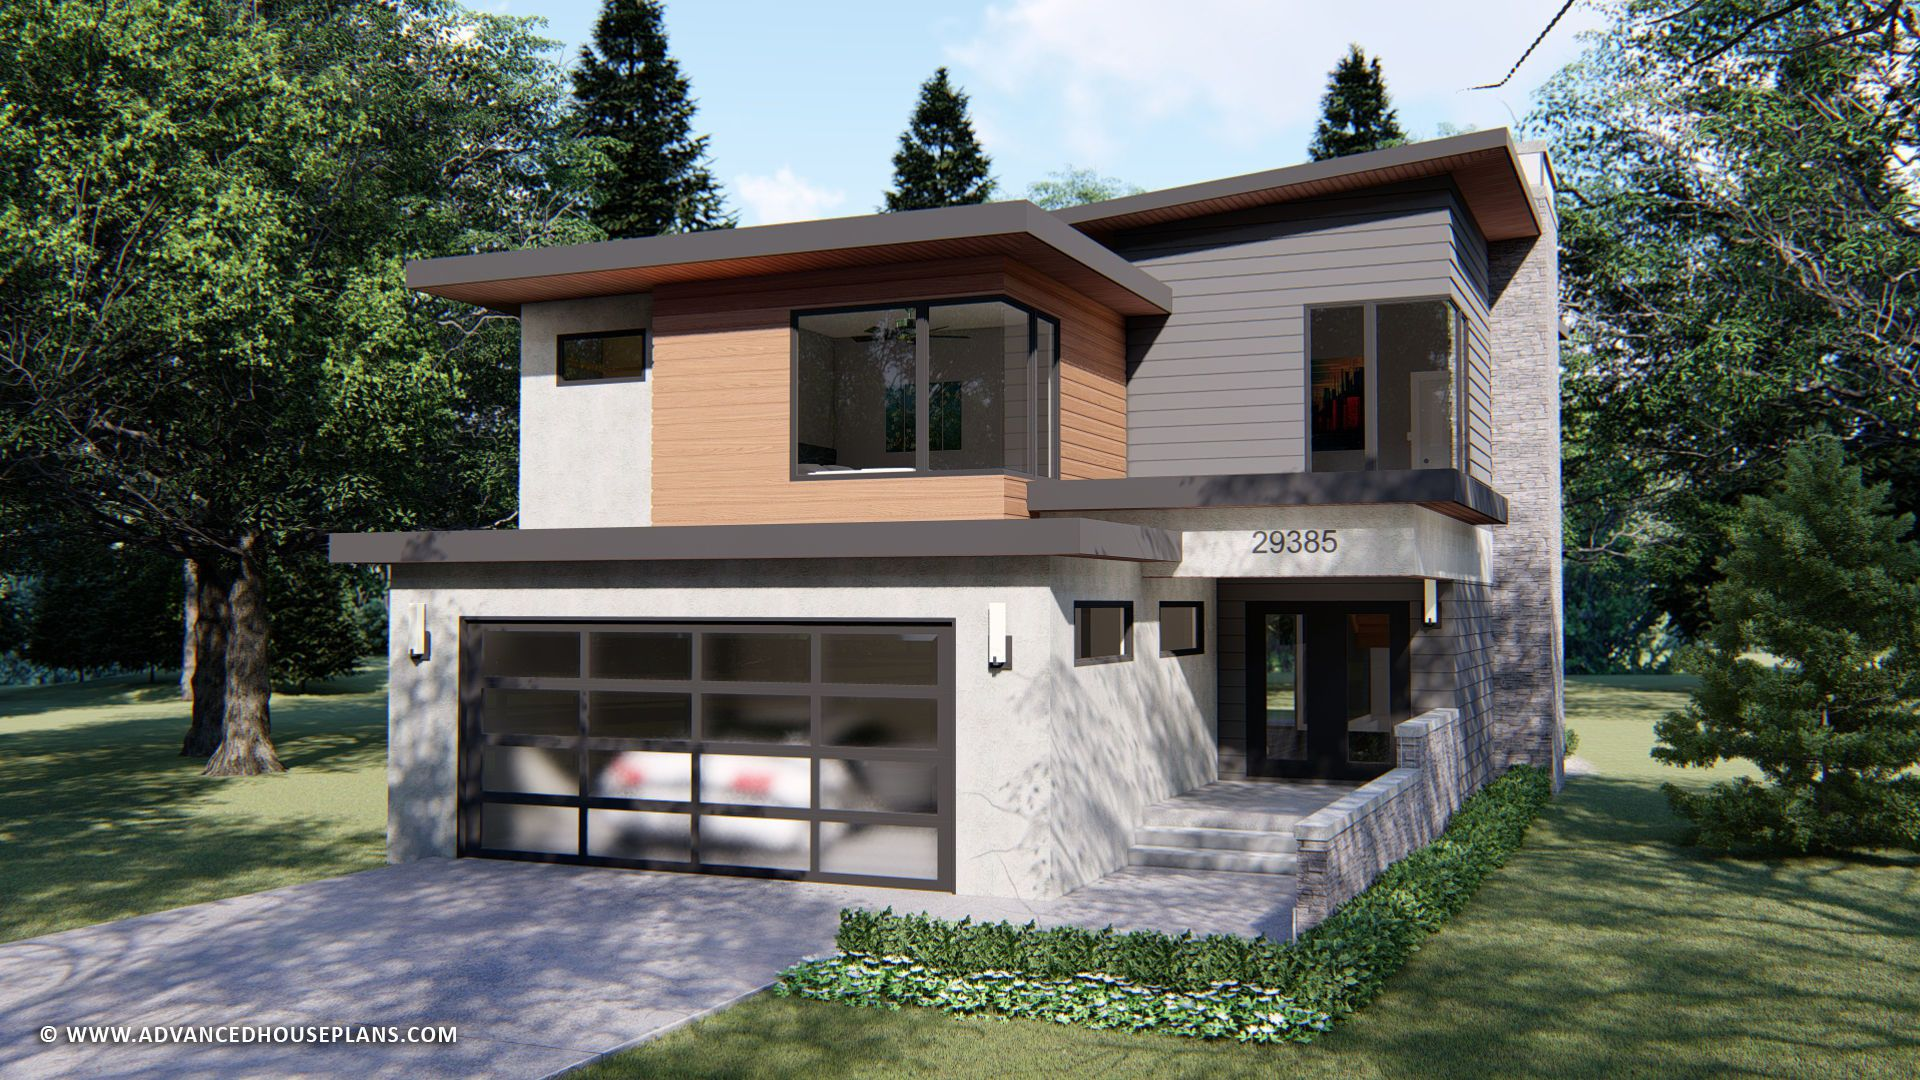 Commonwealth 2 Story Modern House Plan | Modern style house plans ...